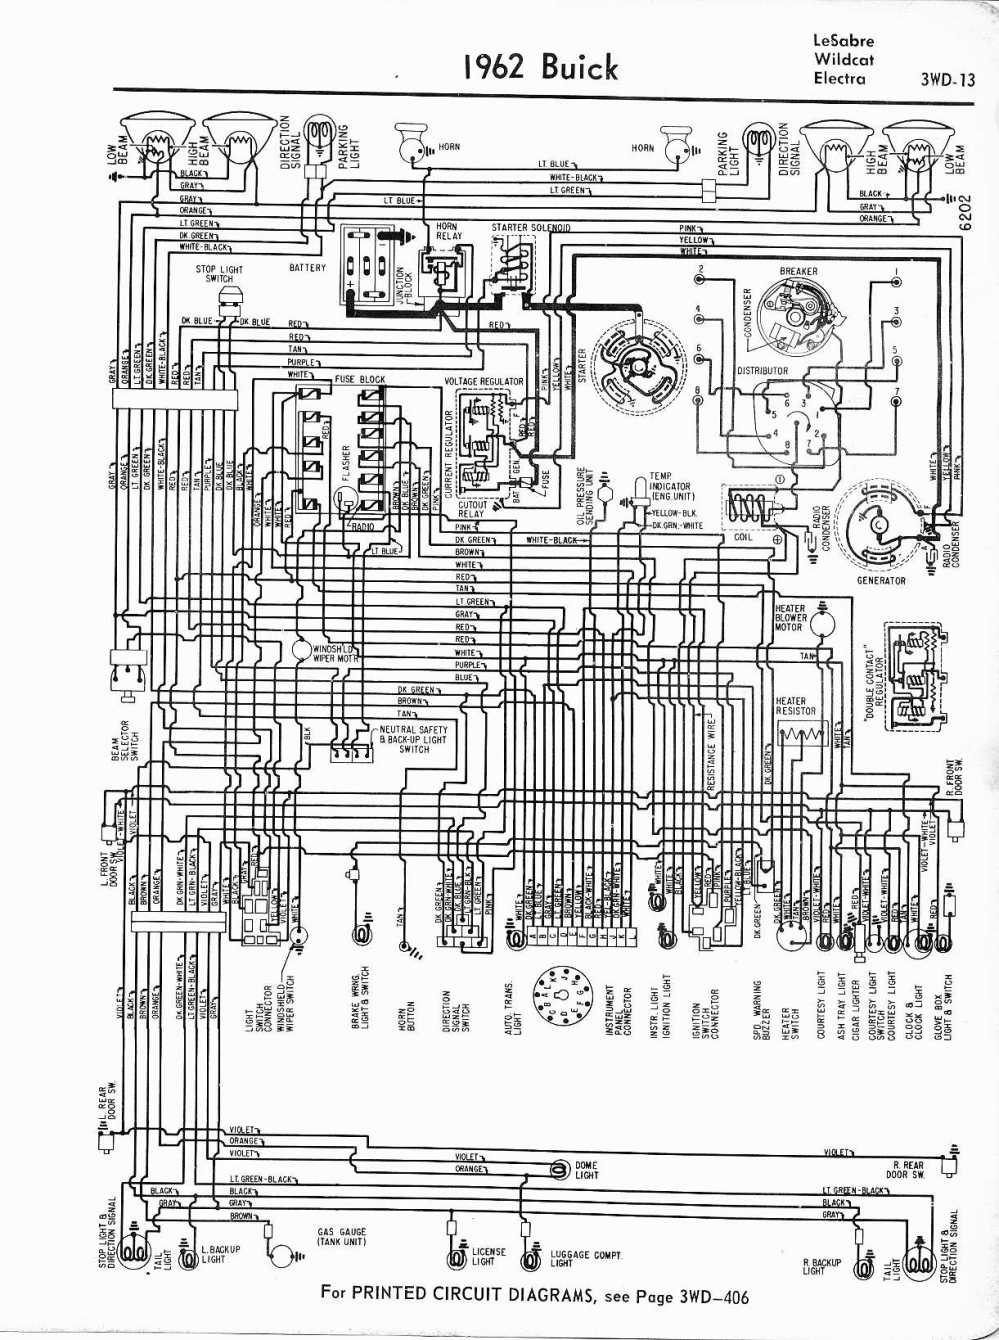 medium resolution of buick wiring diagrams 1957 1965 1966 chevy chevelle wiring diagram 1962 lesabre wildcat electra